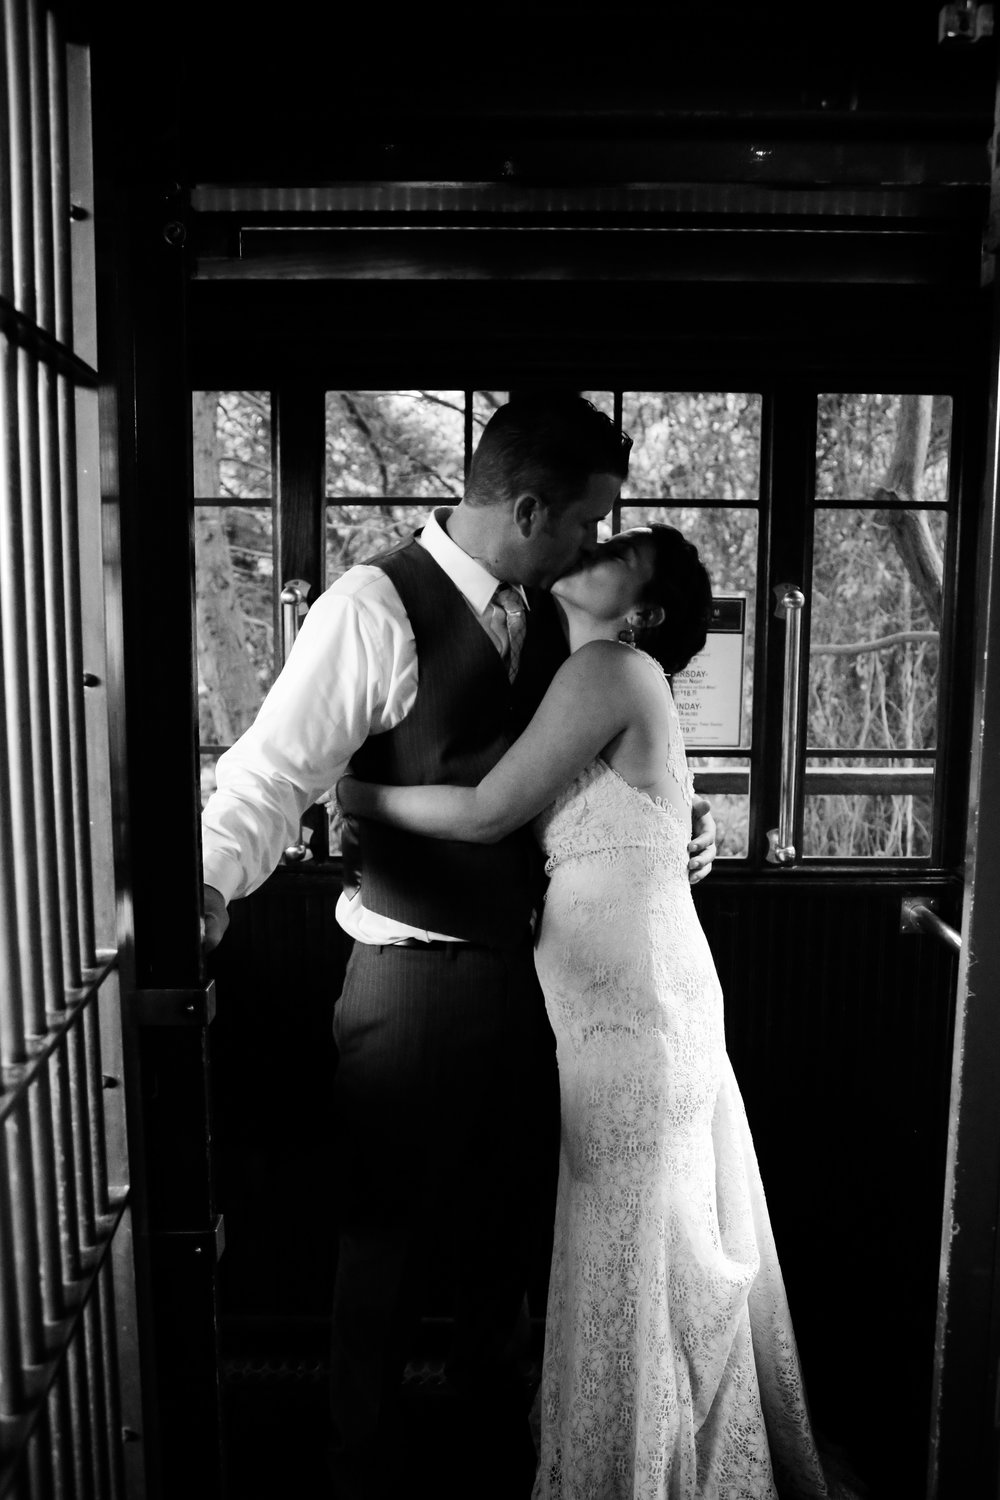 alexandra-rice-photography-shadowbrook-capitola-santa cruz-wedding-bride-groom-portrait-trolley-black-white-kiss.jpg